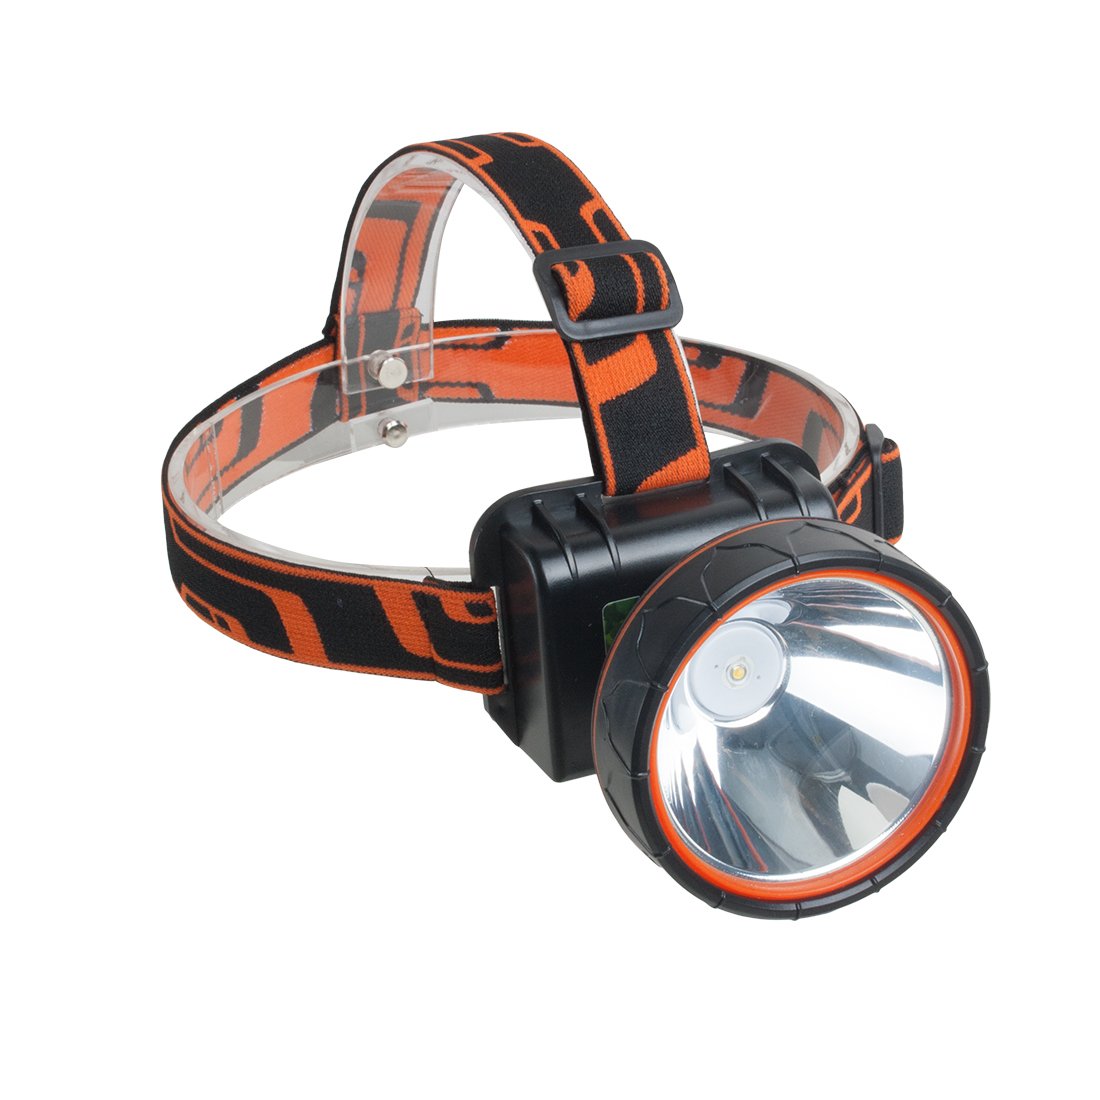 Rechargeable Battery LCD Display LED Headlamp Fishing Camping Head Light Super Bright Lamp Yellow